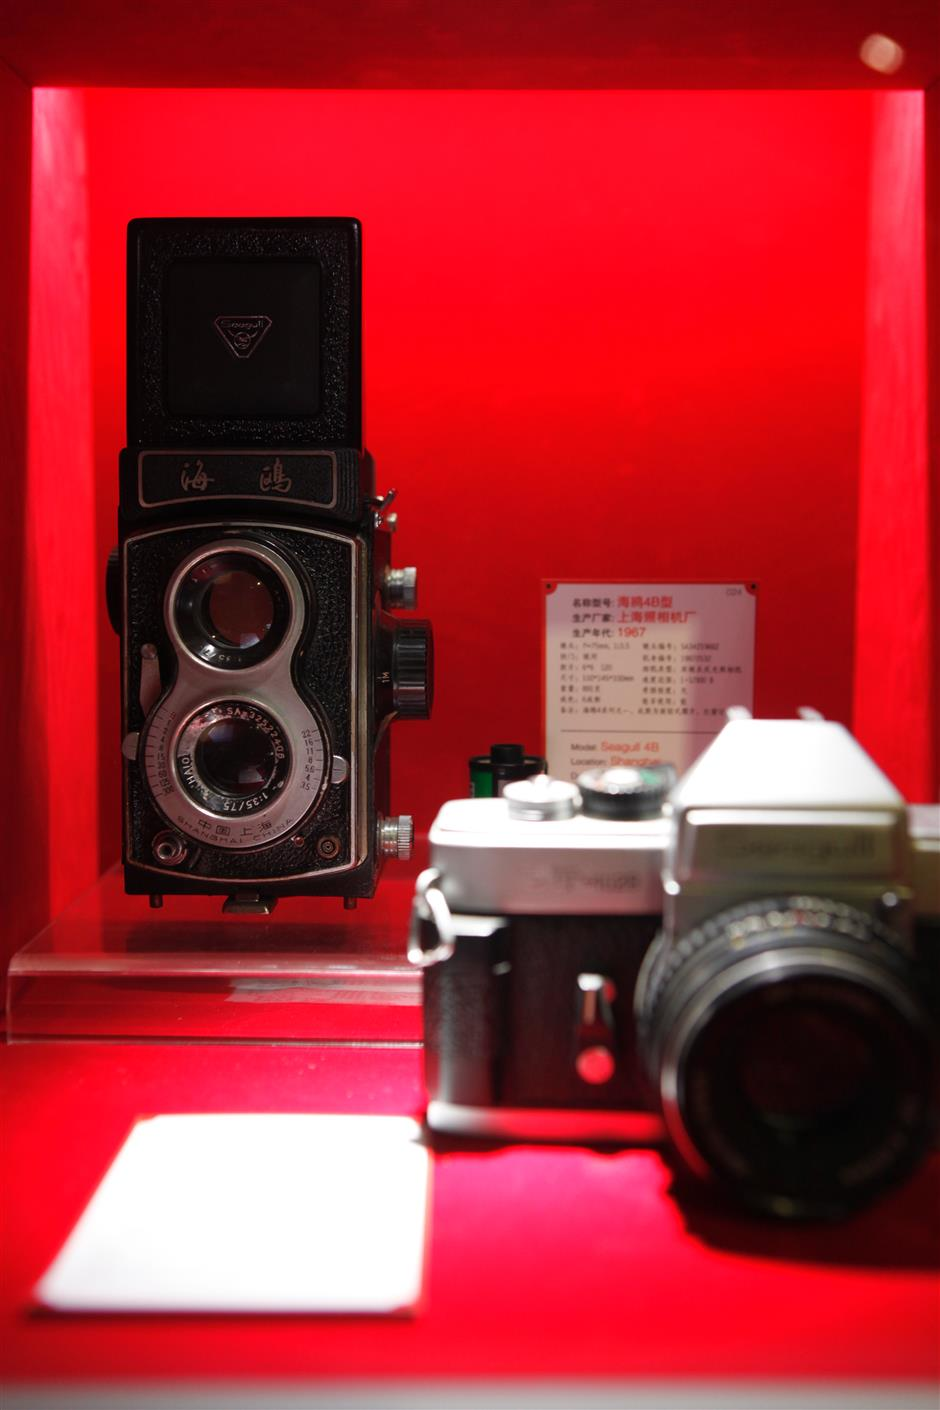 A retrospective of old cameras in photo history